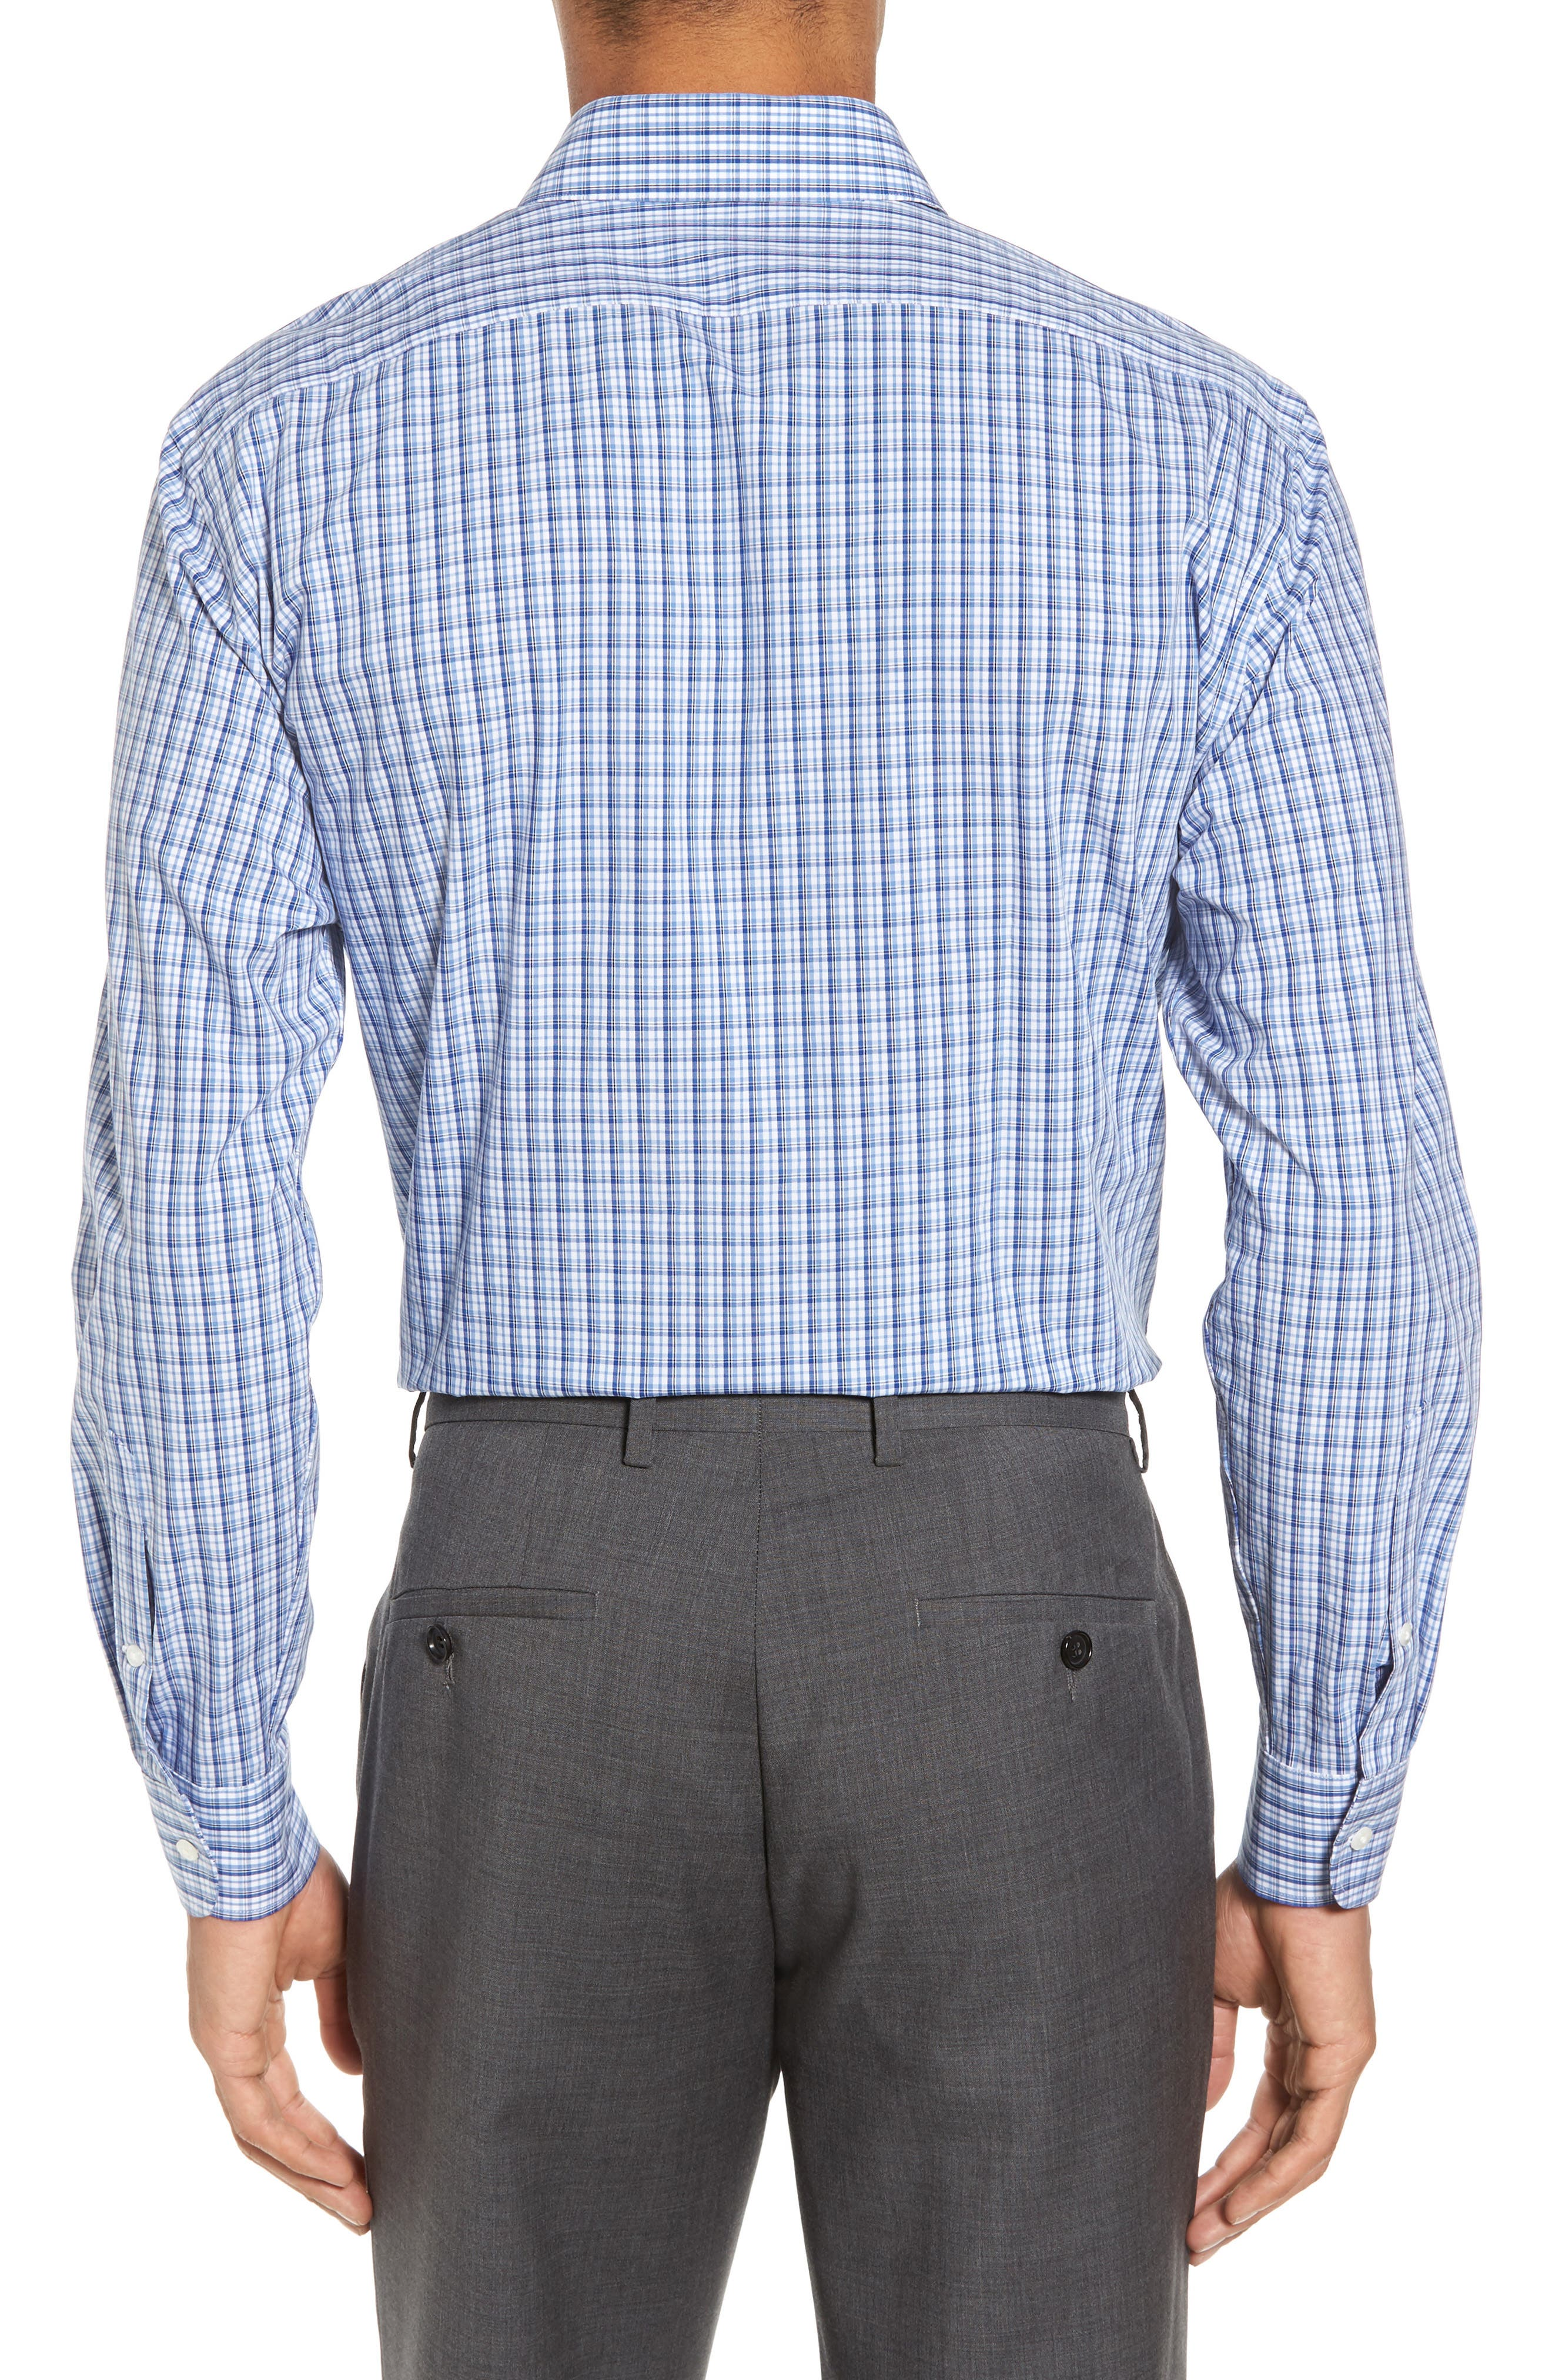 Tech-Smart Trim Fit Stretch Plaid Dress Shirt,                             Alternate thumbnail 2, color,                             401